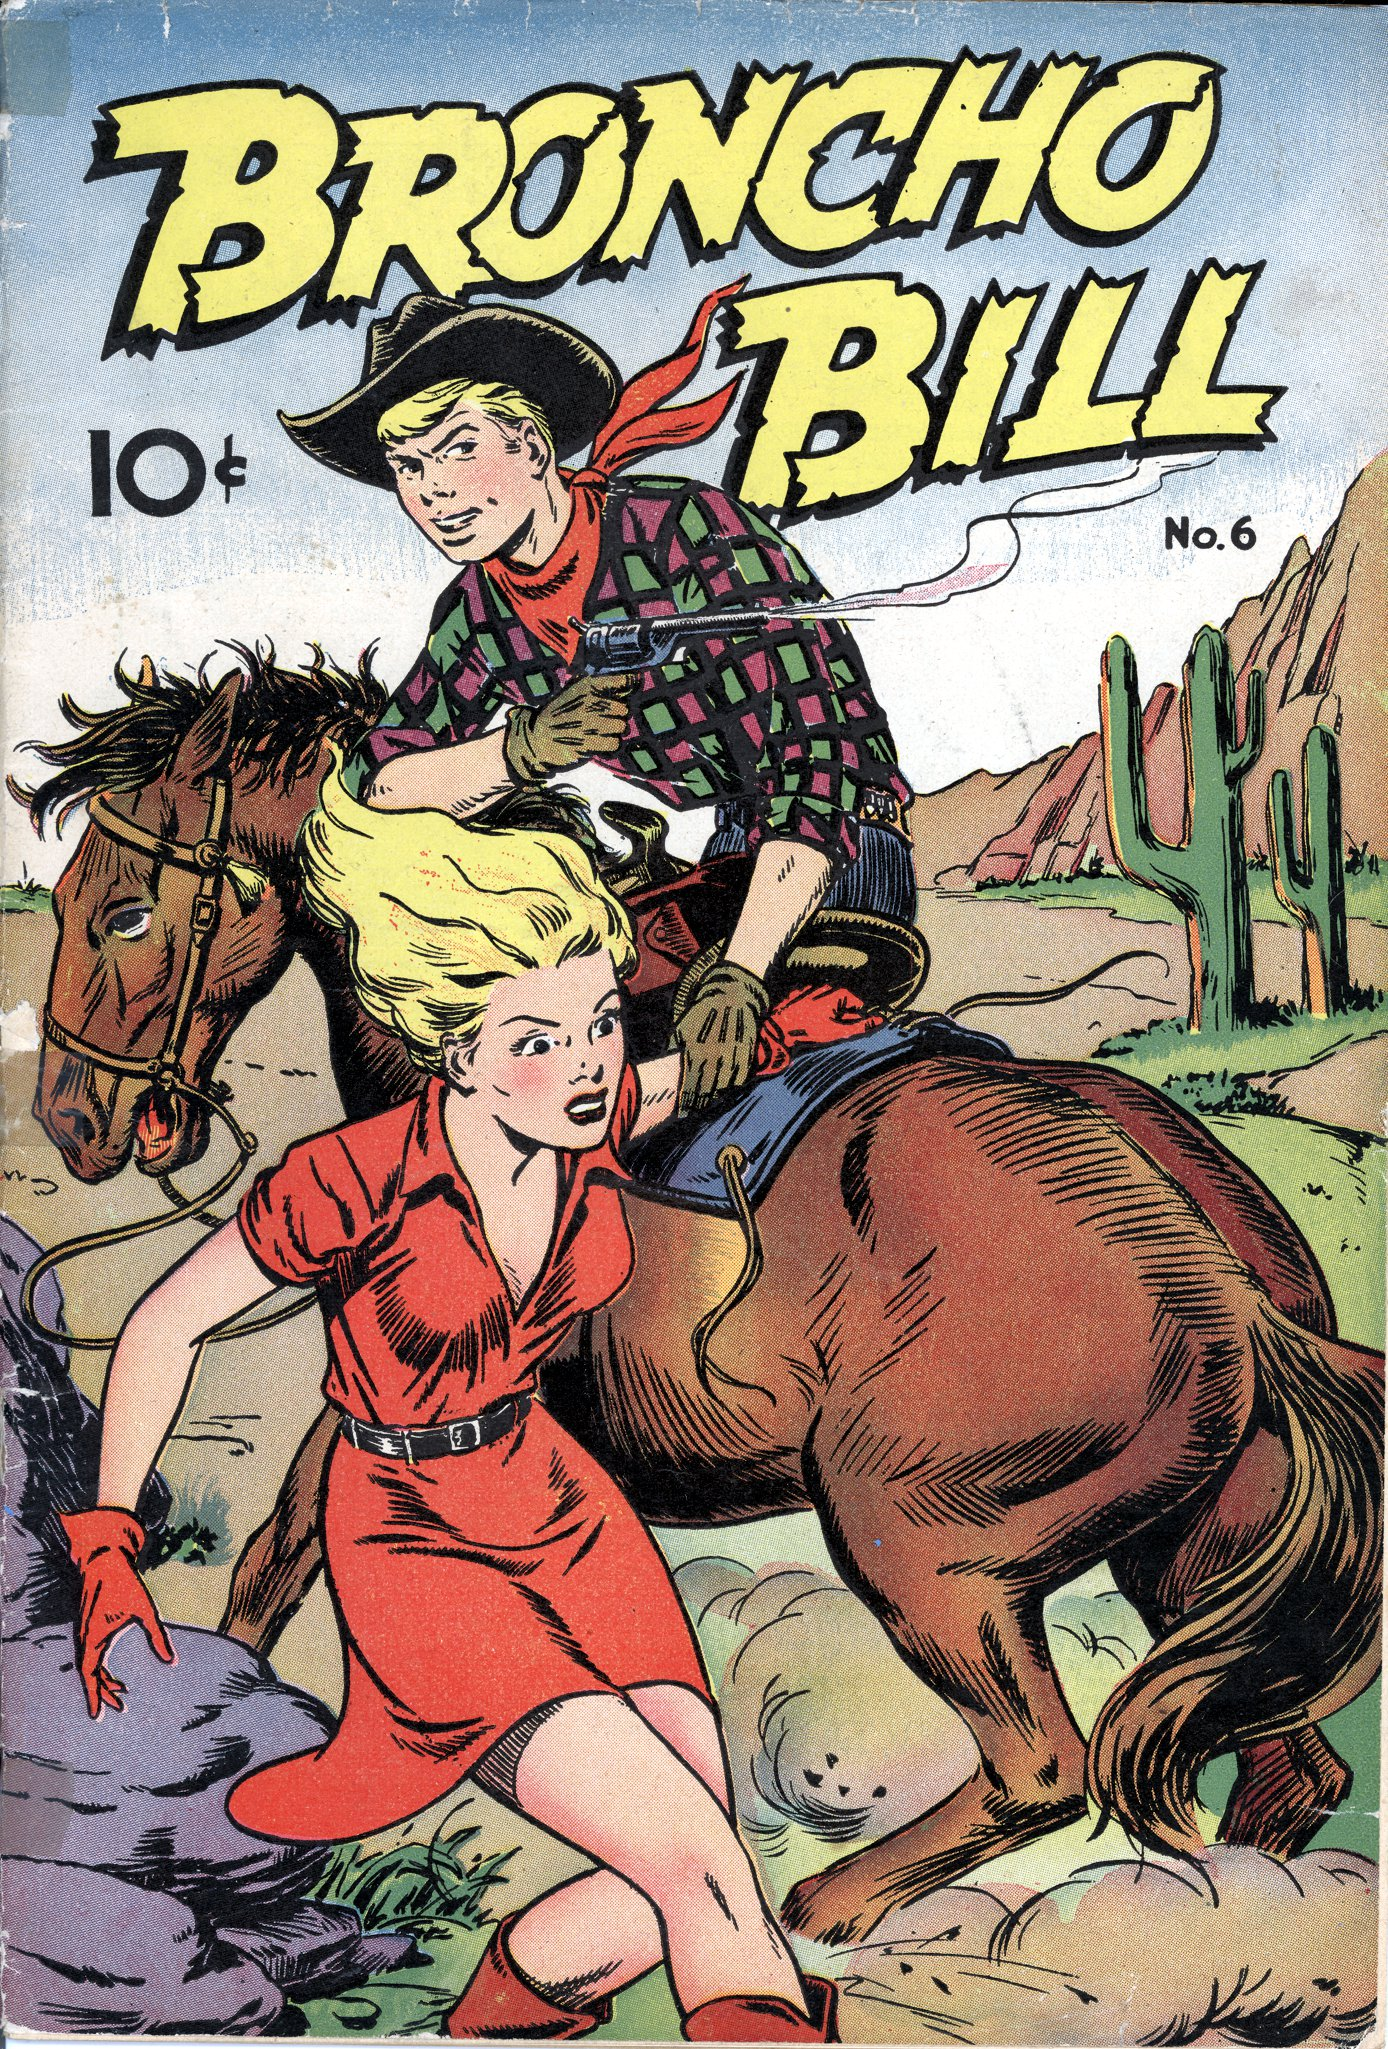 Broncho Bill #6 by Pines